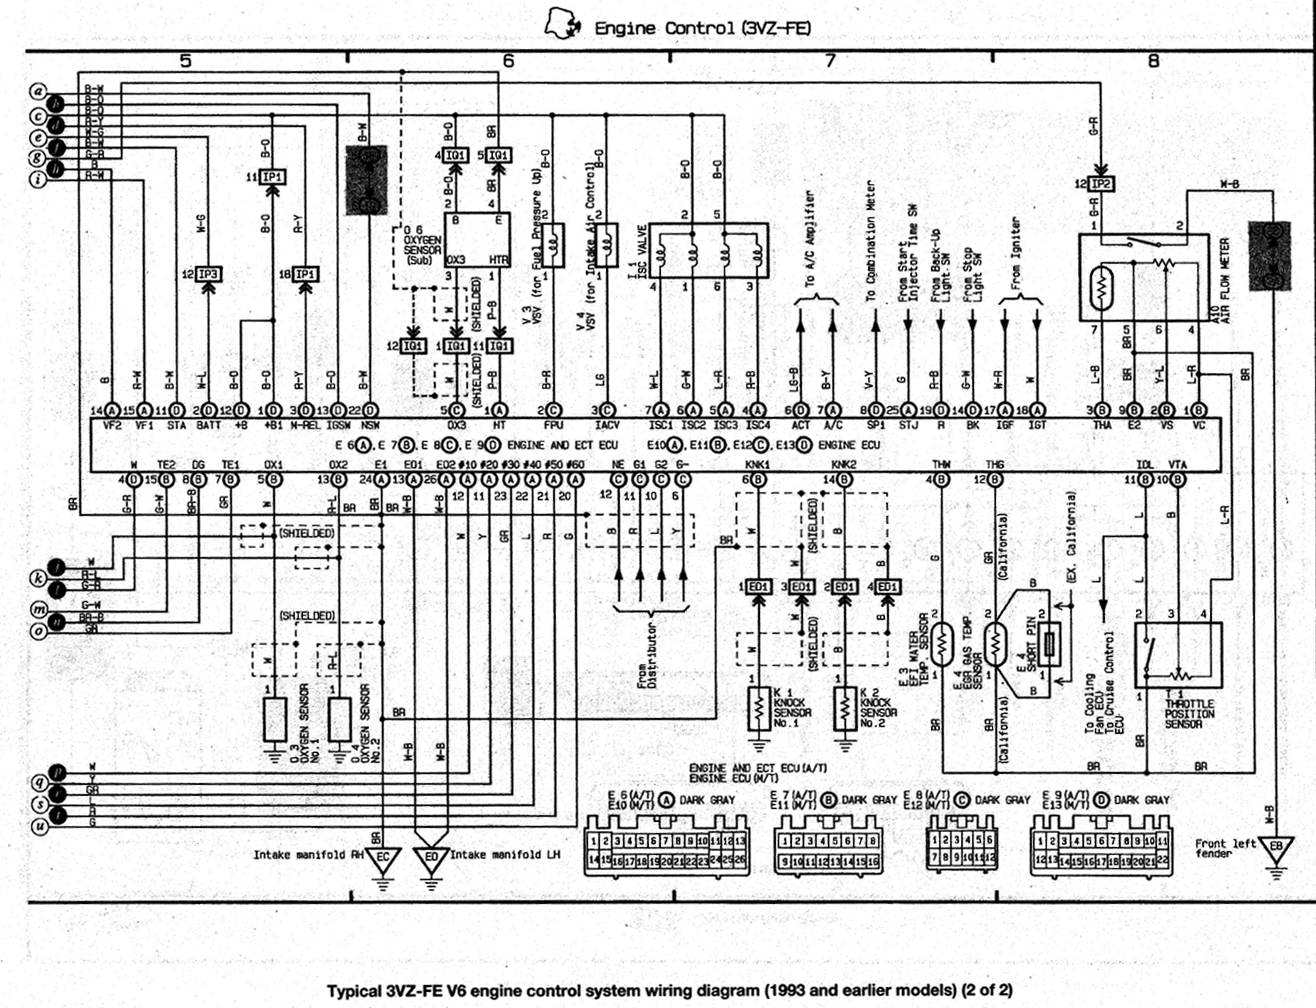 2zzge Wiring Diagram 20 Images Diagrams 2zz Ge Pinout Wire Harness 3vzfewiringdiagram02 3vz Fe Into 1973 Rt 81 Corona At Cita